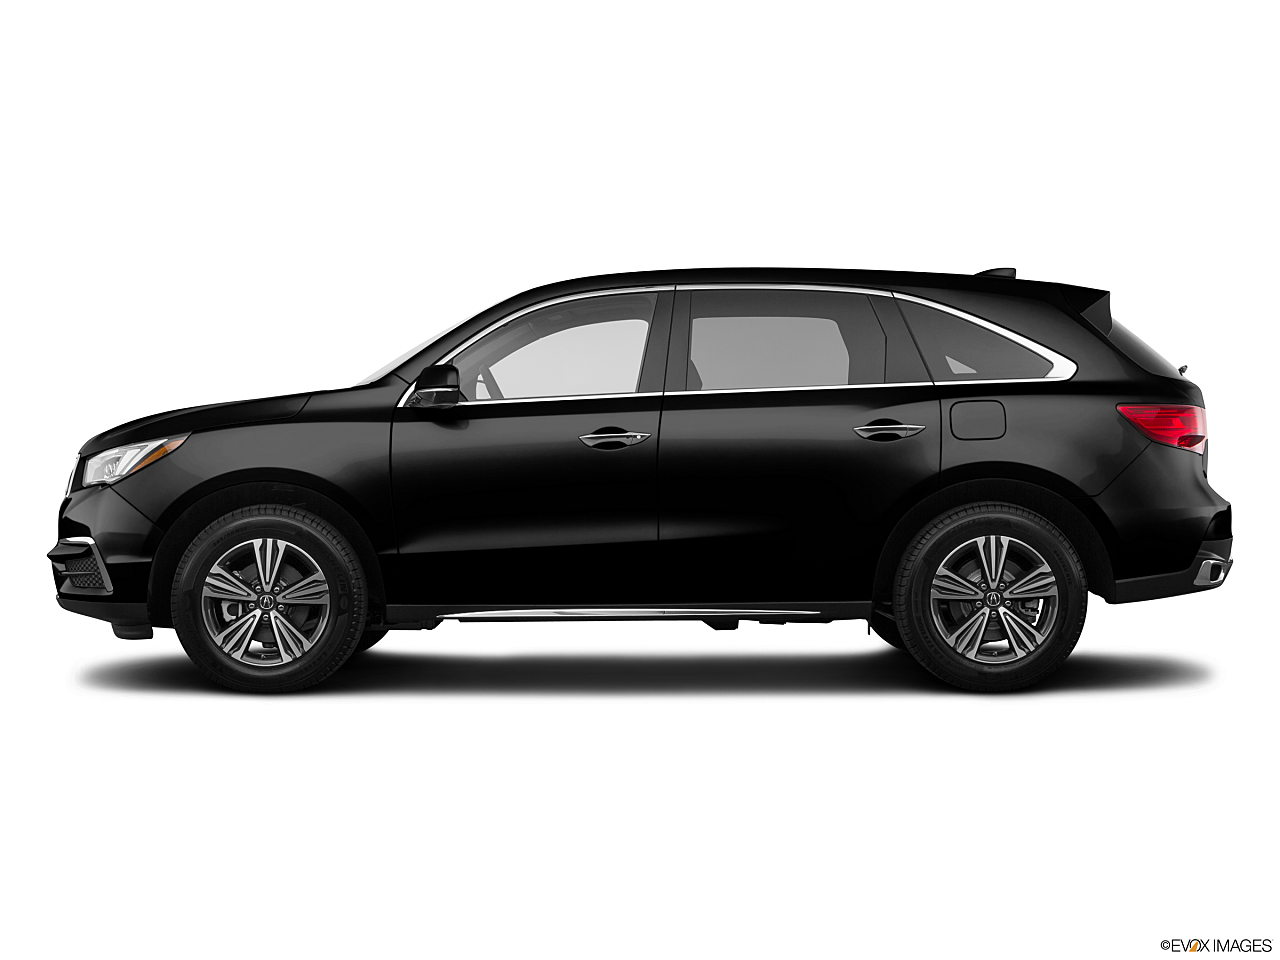 2018 Acura MDX at Acura of Huntington of Huntington Station, NY. The dealership has not provided a description for the image.